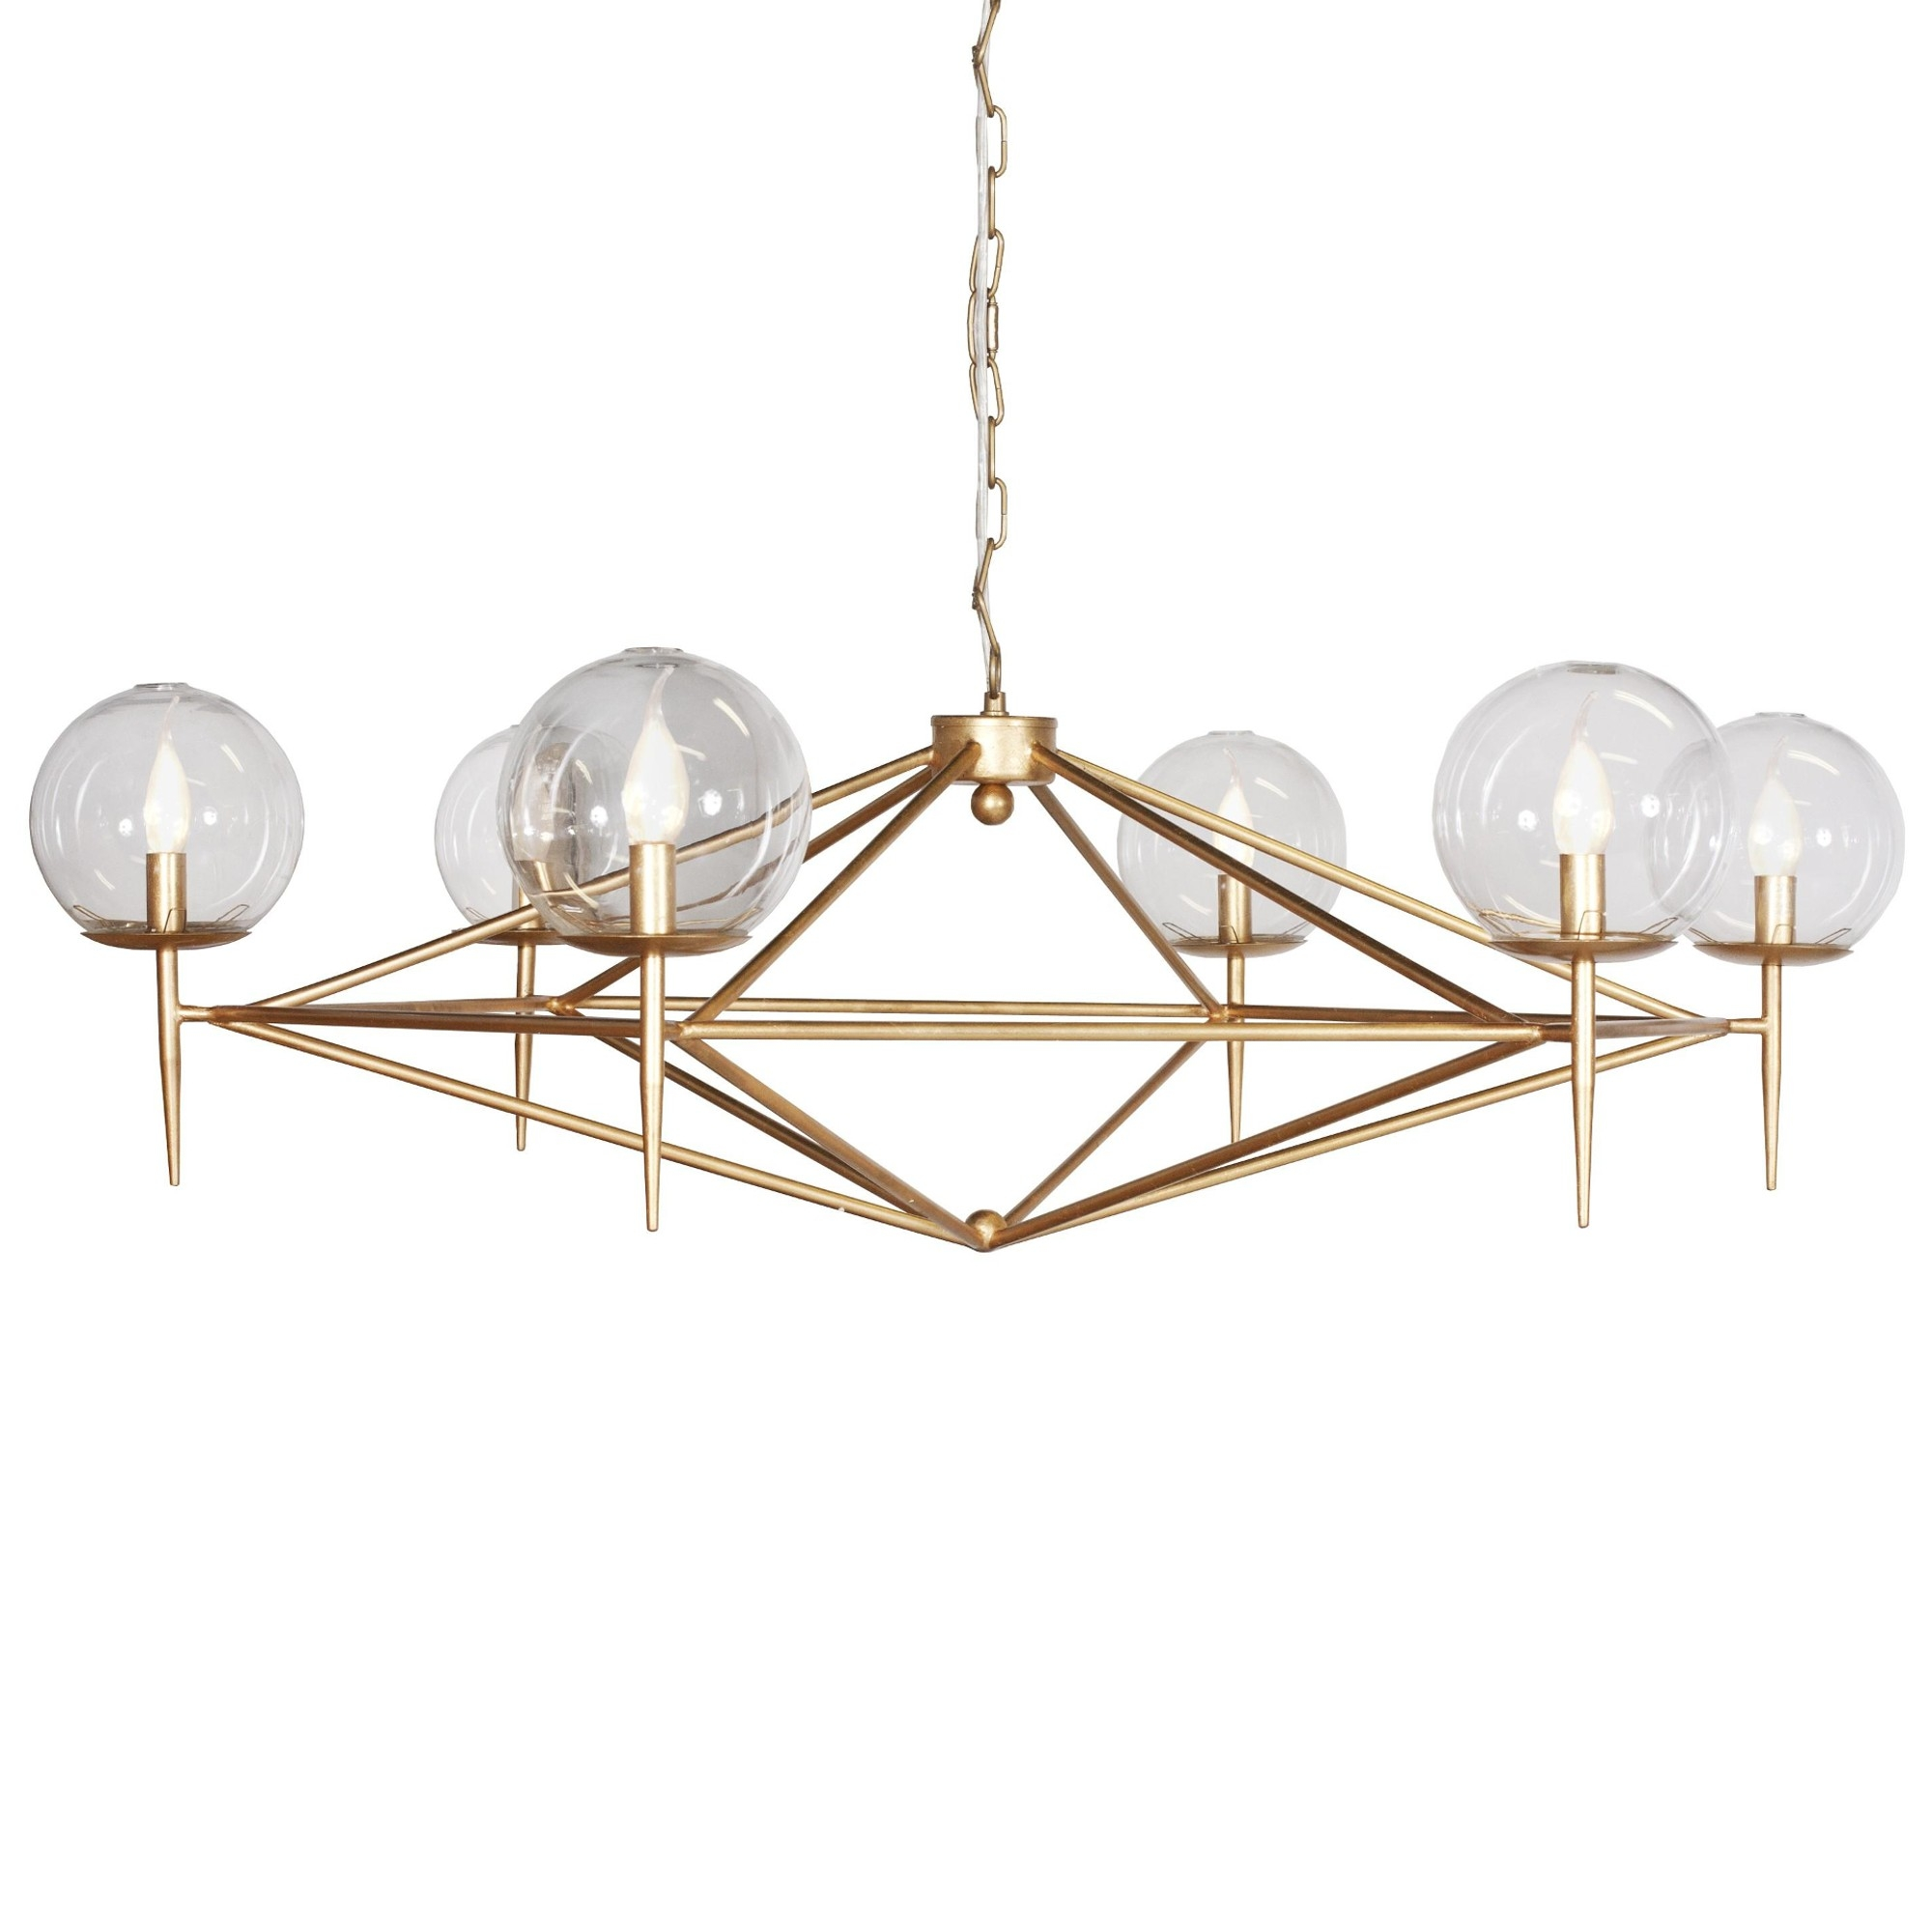 Kudzu And Company Geometric Gold Leaf Chandelier In Gold Leaf Chandelier (Image 14 of 15)